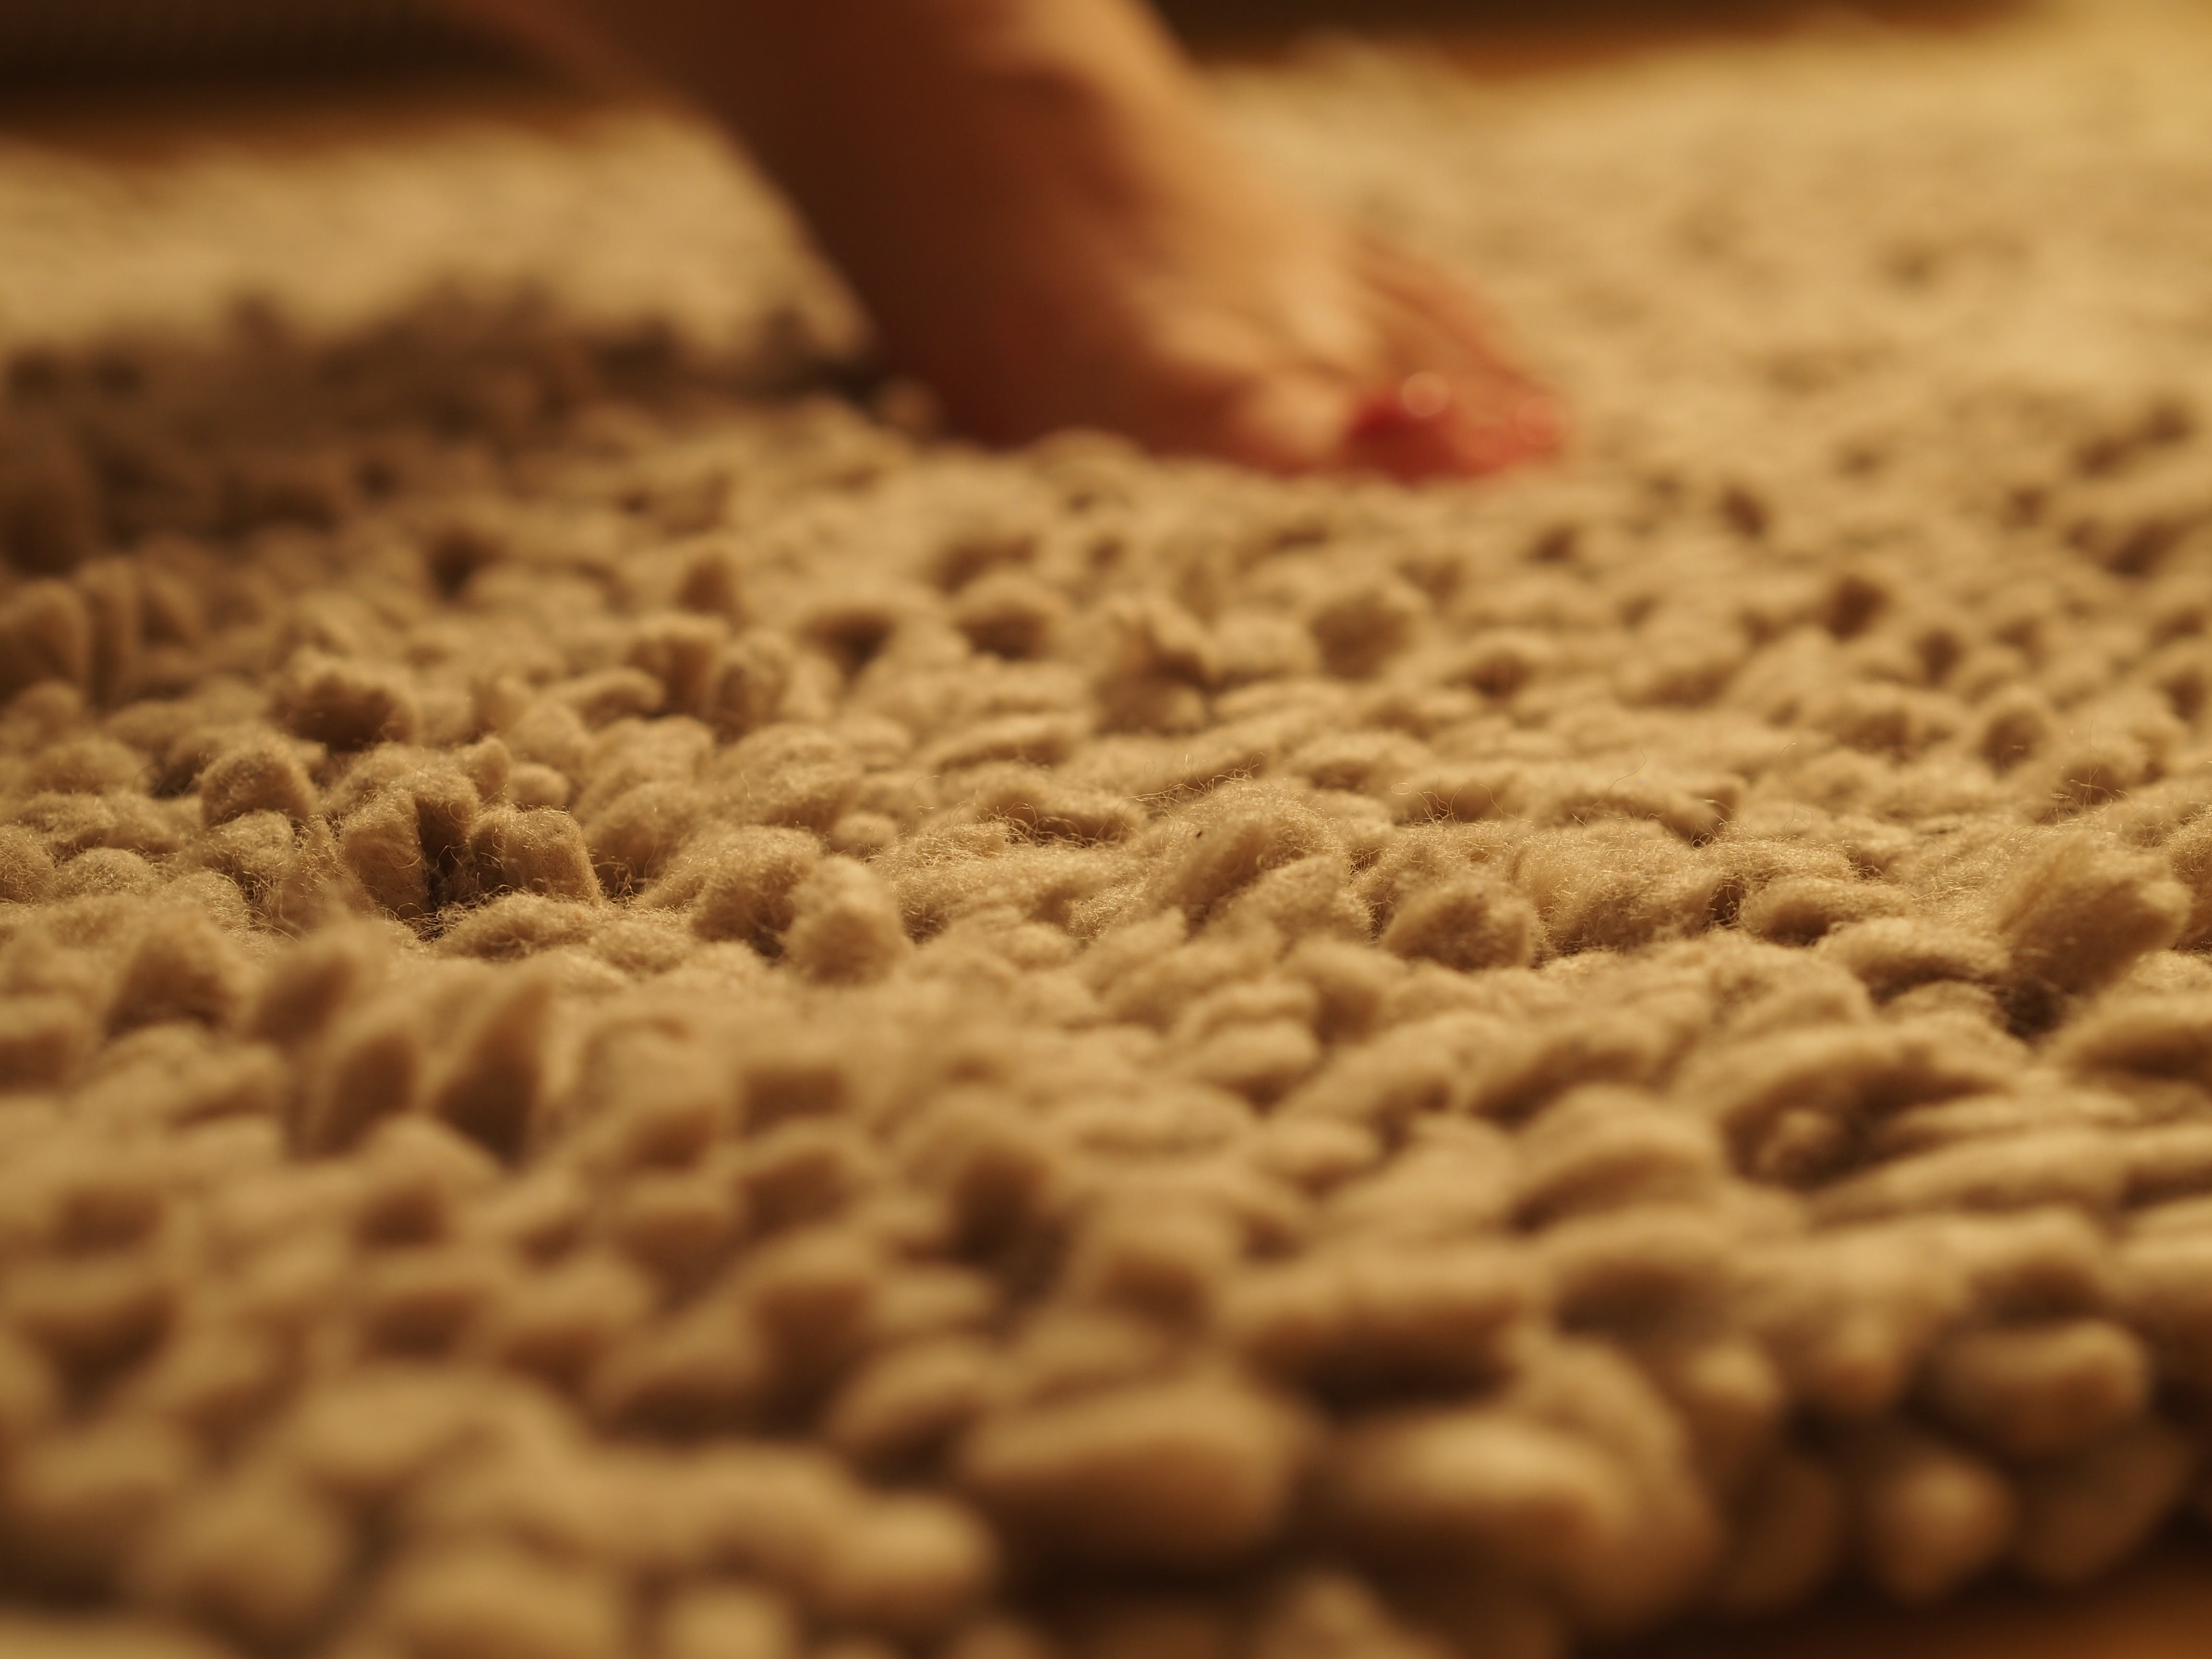 carpet, foot, soft